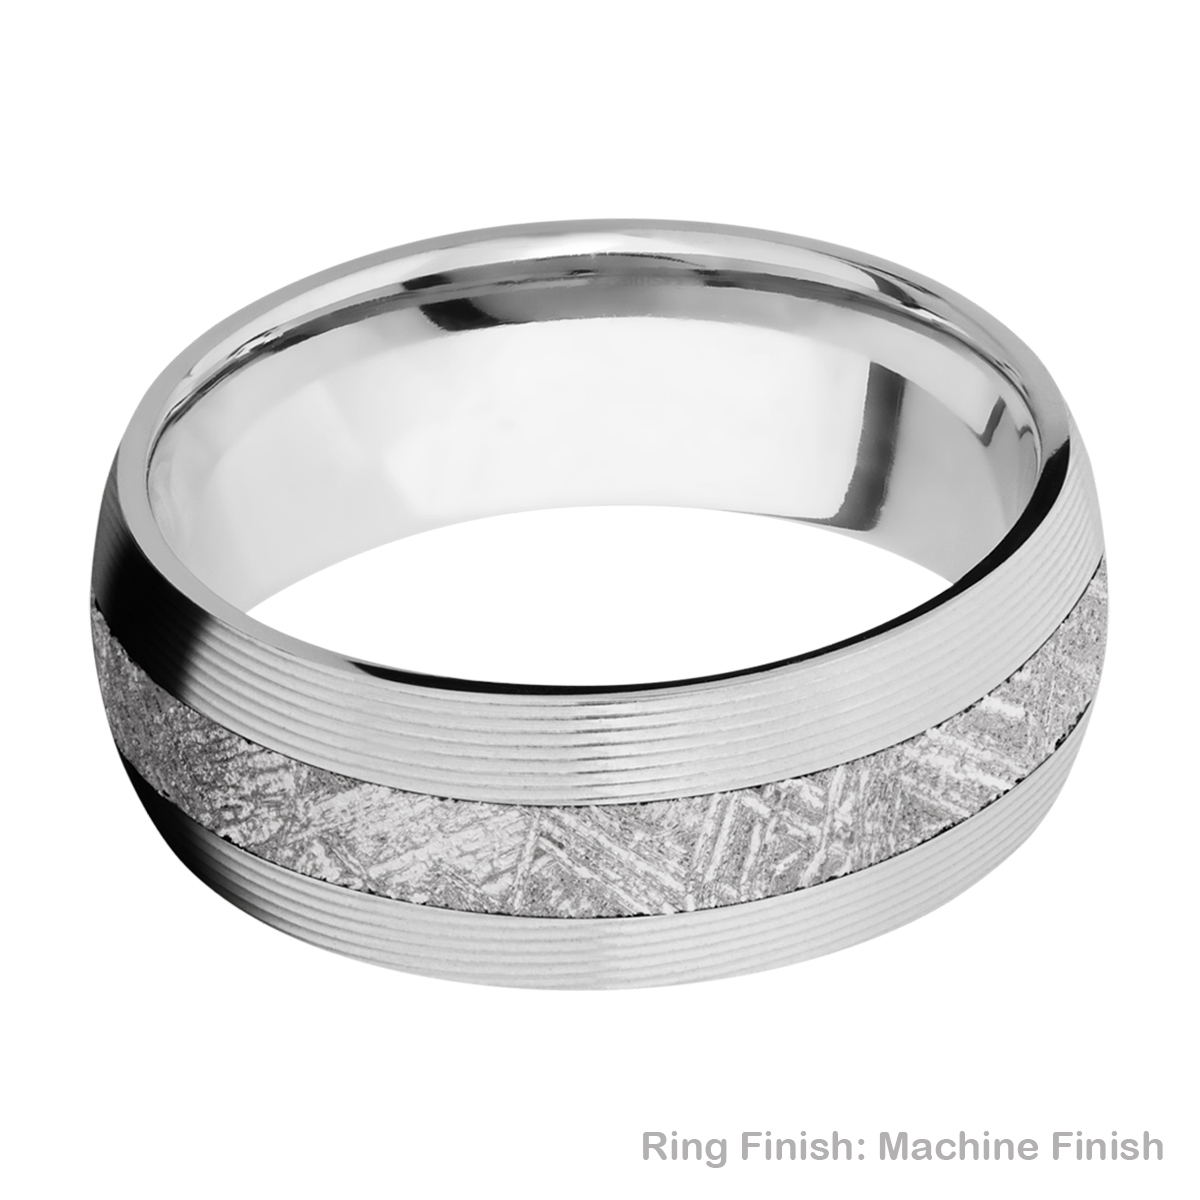 Lashbrook CC8D13/METEORITE Cobalt Chrome Wedding Ring or Band Alternative View 9